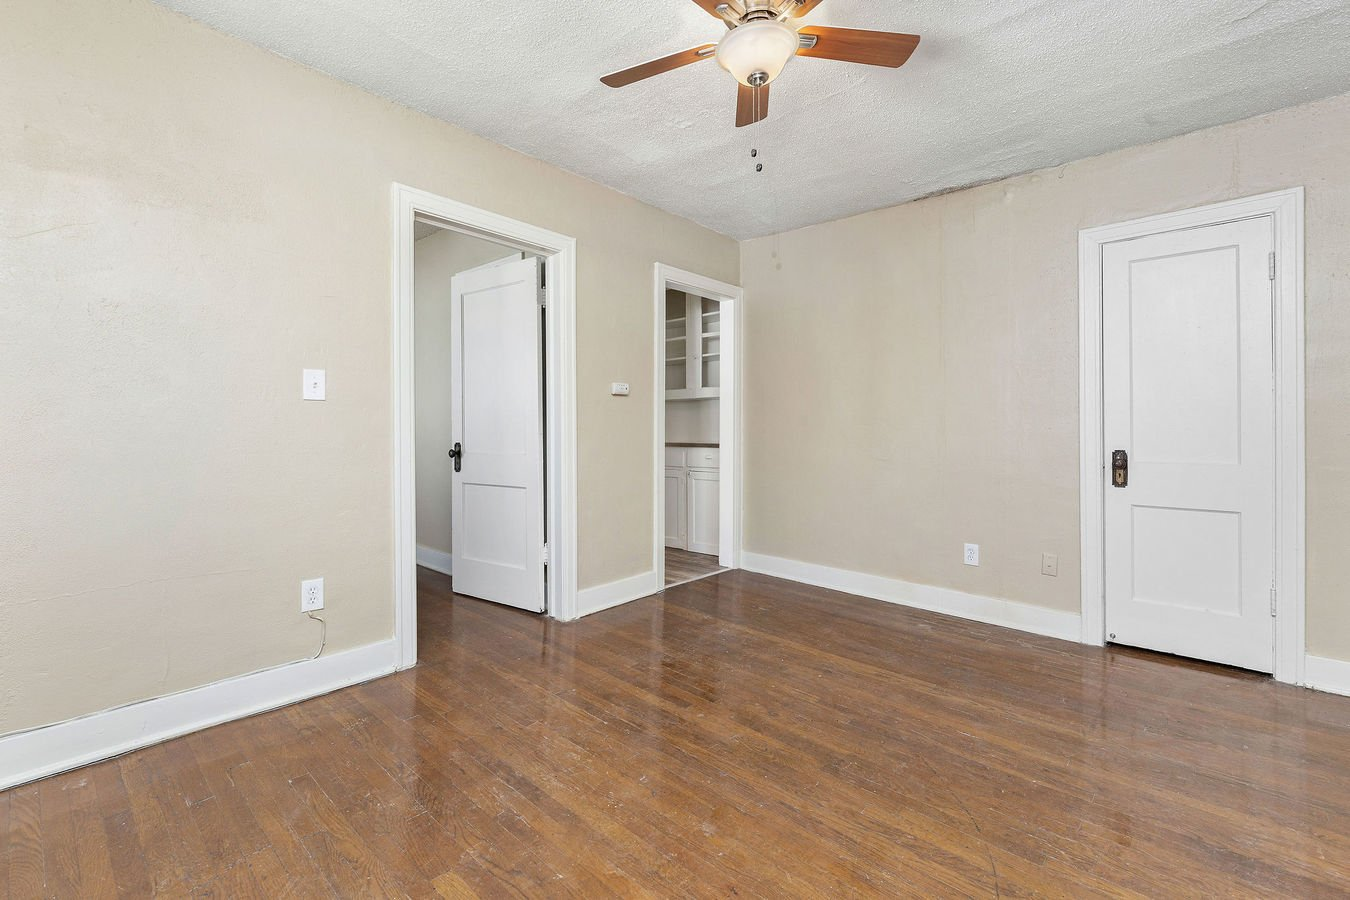 2 Bedrooms 1 Bathroom Apartment for rent at Charlotte in Kansas City, MO